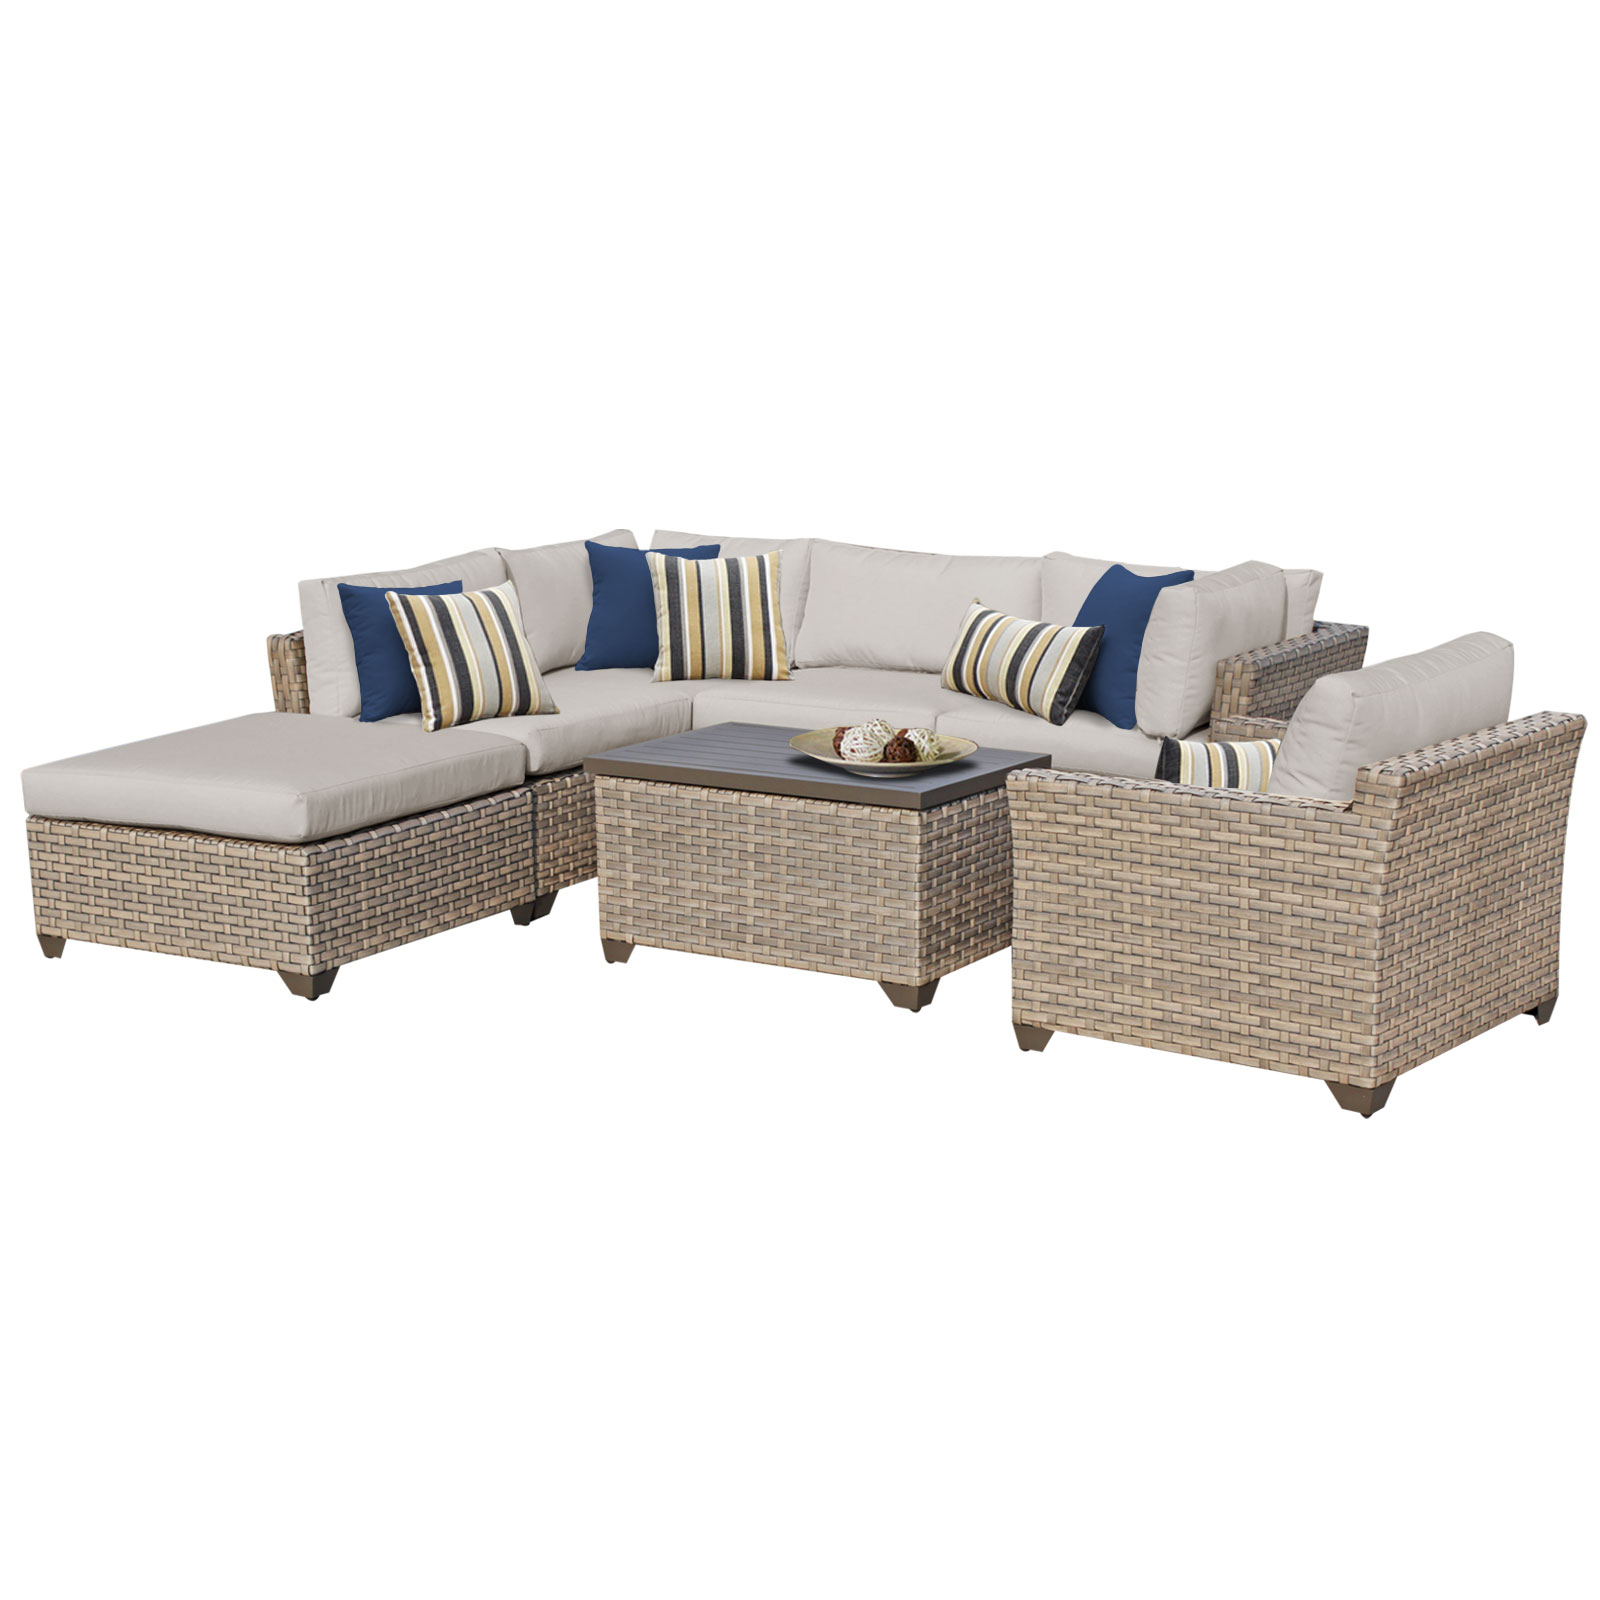 Hampton 7 Piece Outdoor Wicker Patio Furniture Set 07d